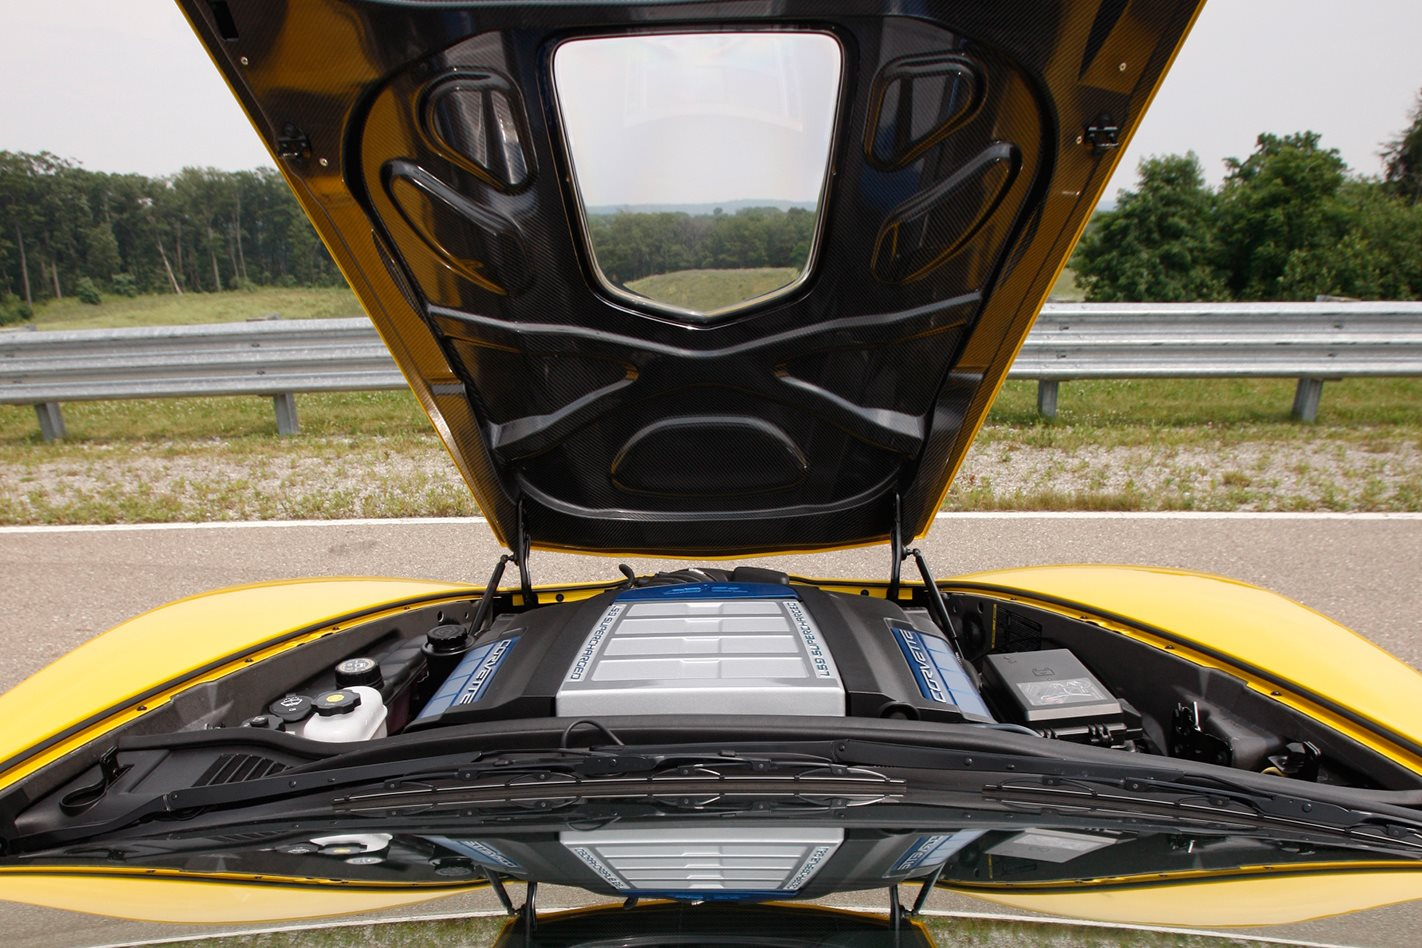 2009-Chevrolet-Corvette-ZR1-bonnet.jpg